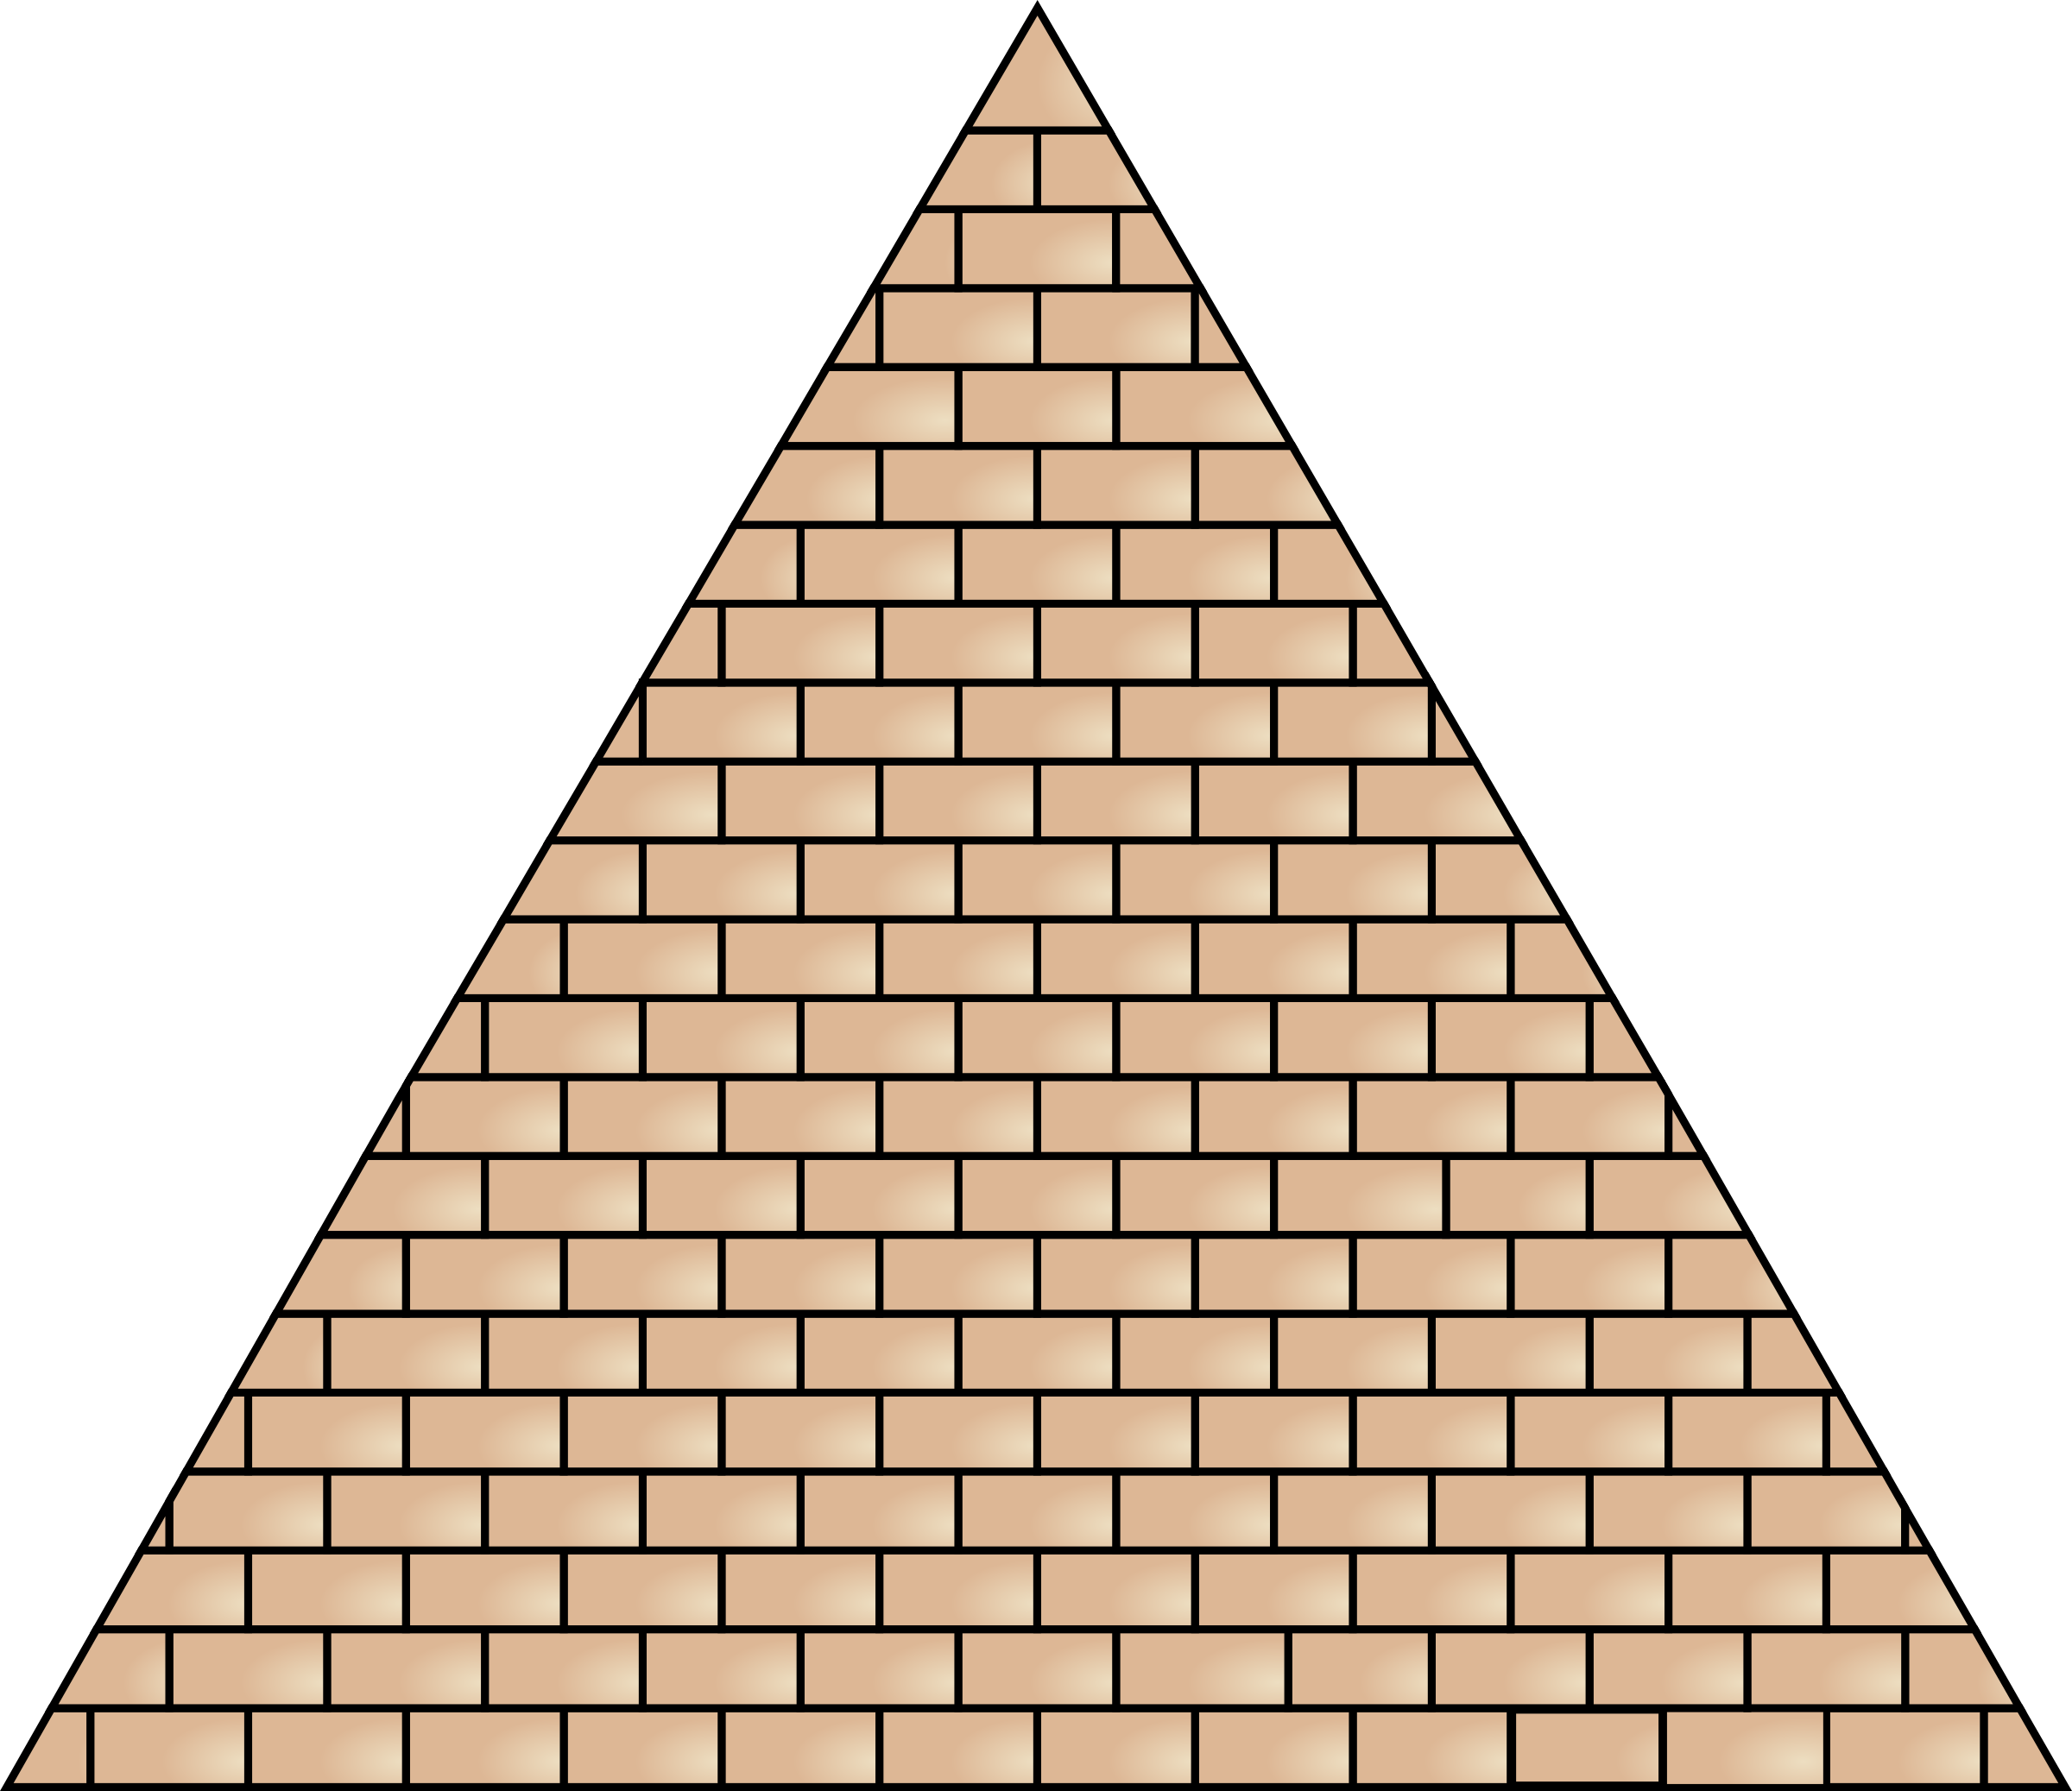 Pyramid by Firkin